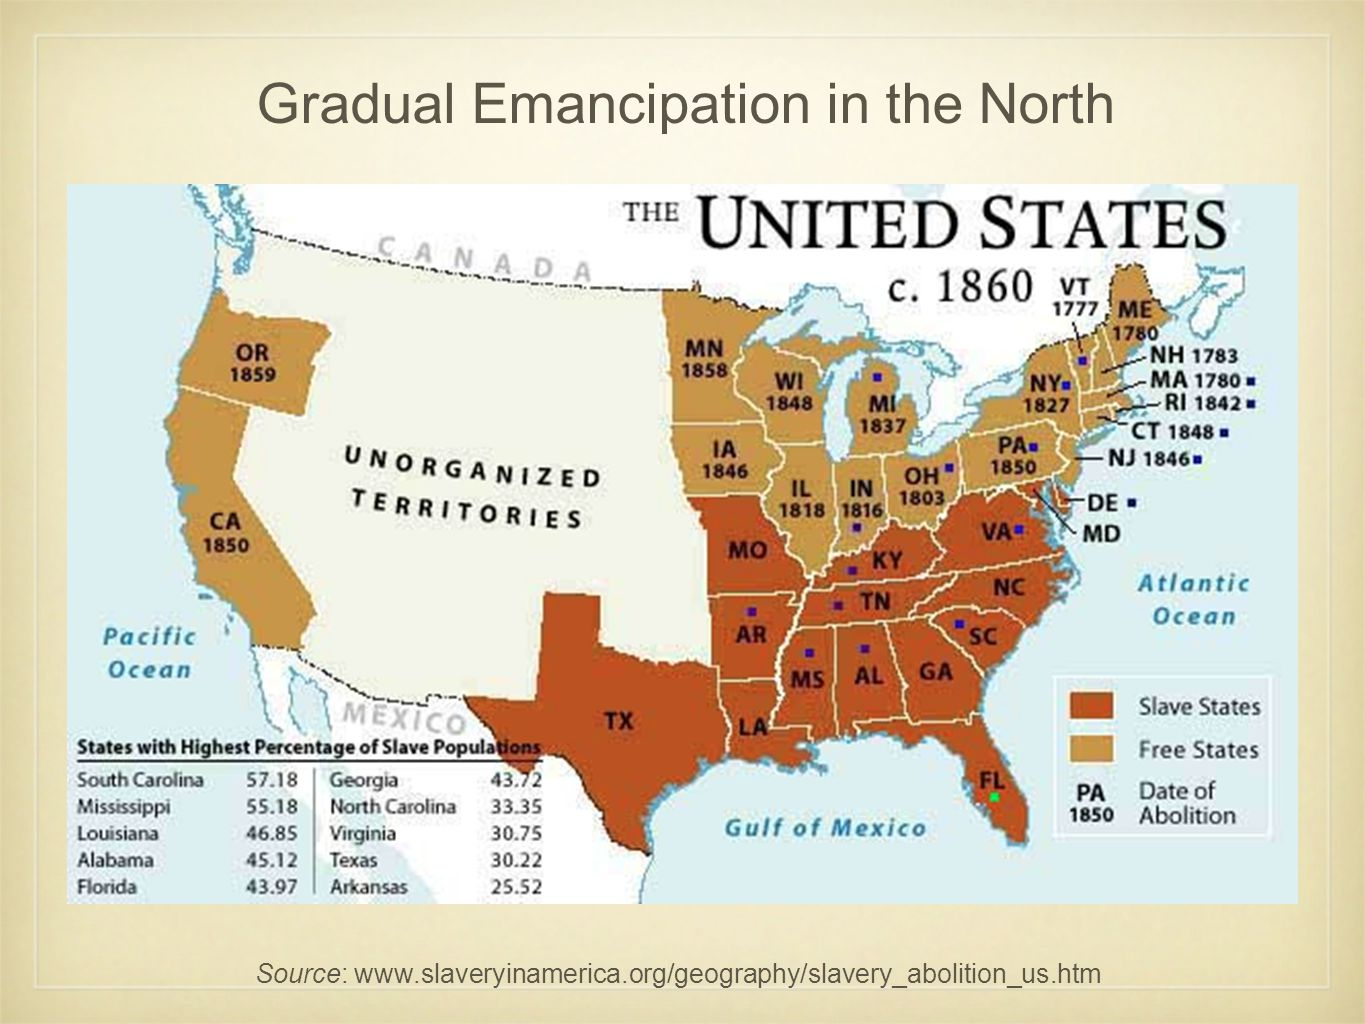 Gradual Emancipation in the North Source: www.slaveryinamerica.org/geography/slavery_abolition_us.htm